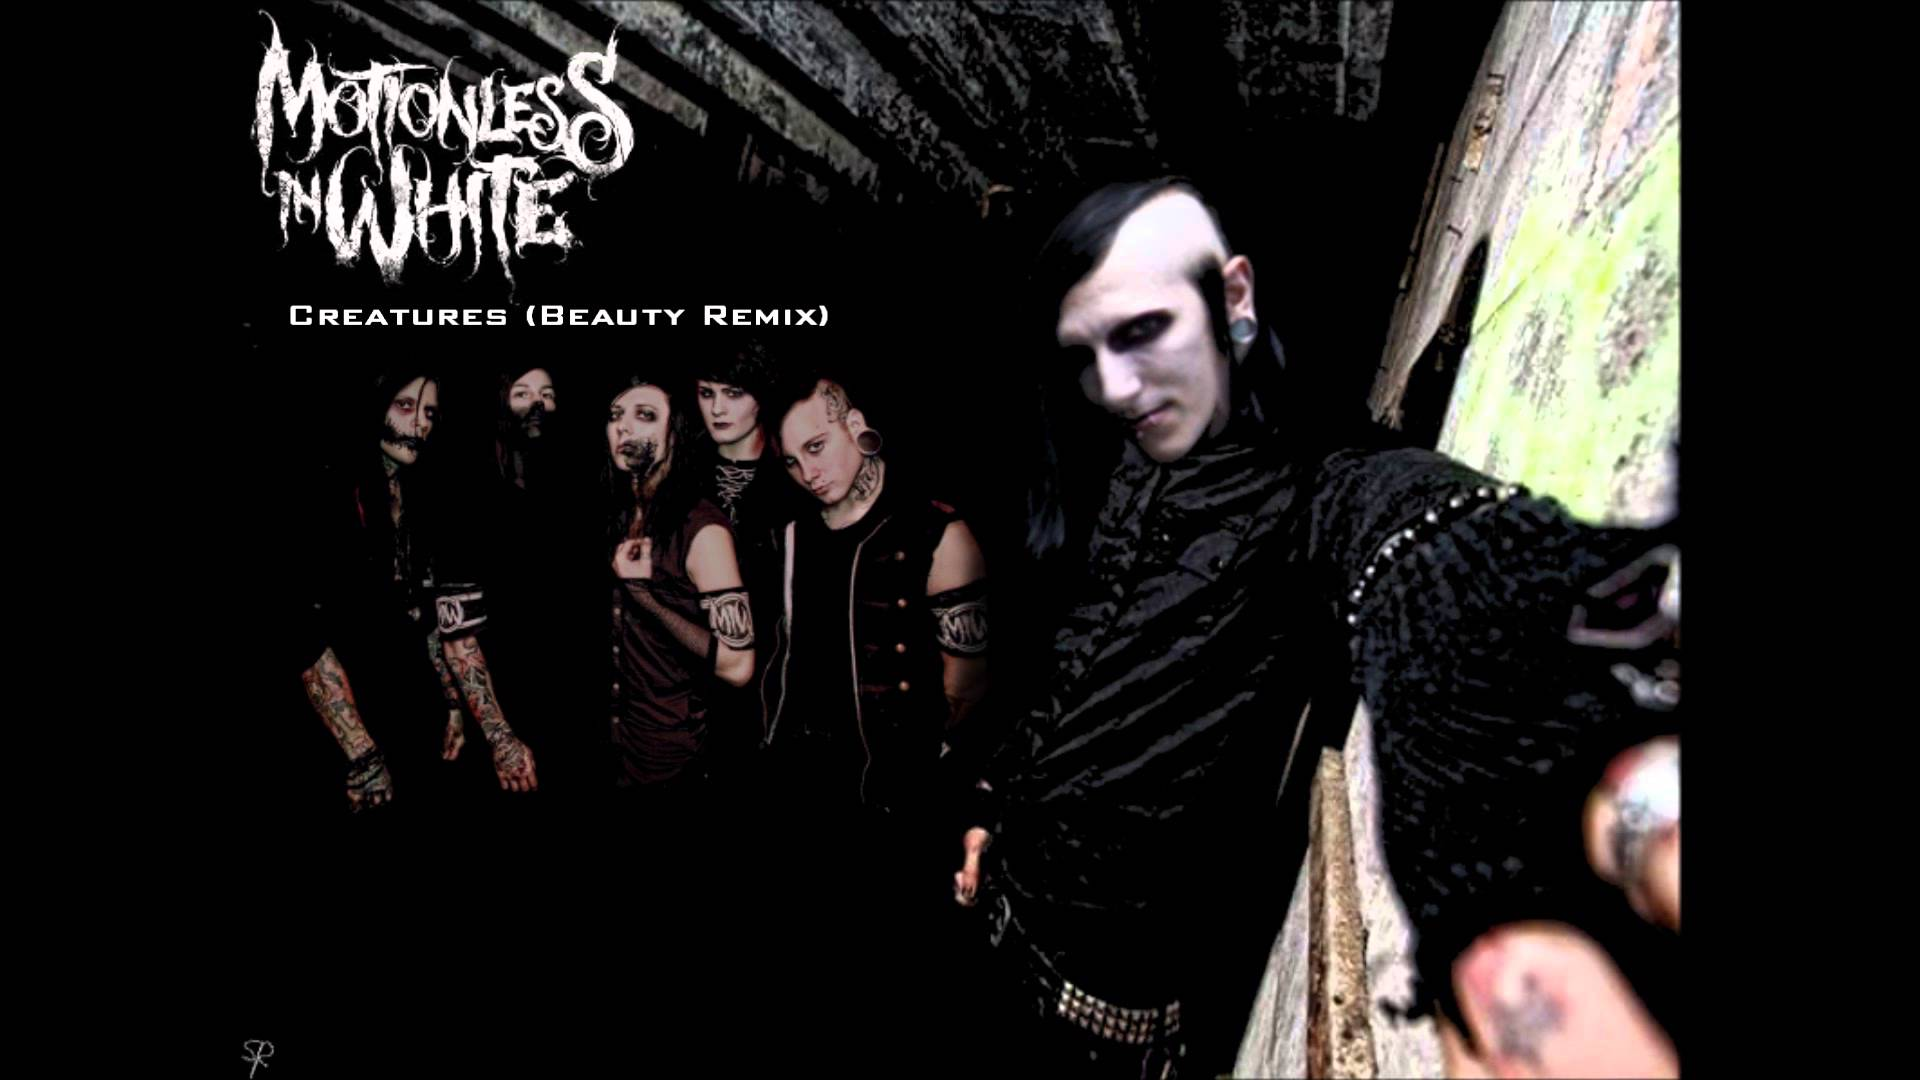 Motionless In White Creatures Beauty Remix Original Version HD High 1920x1080